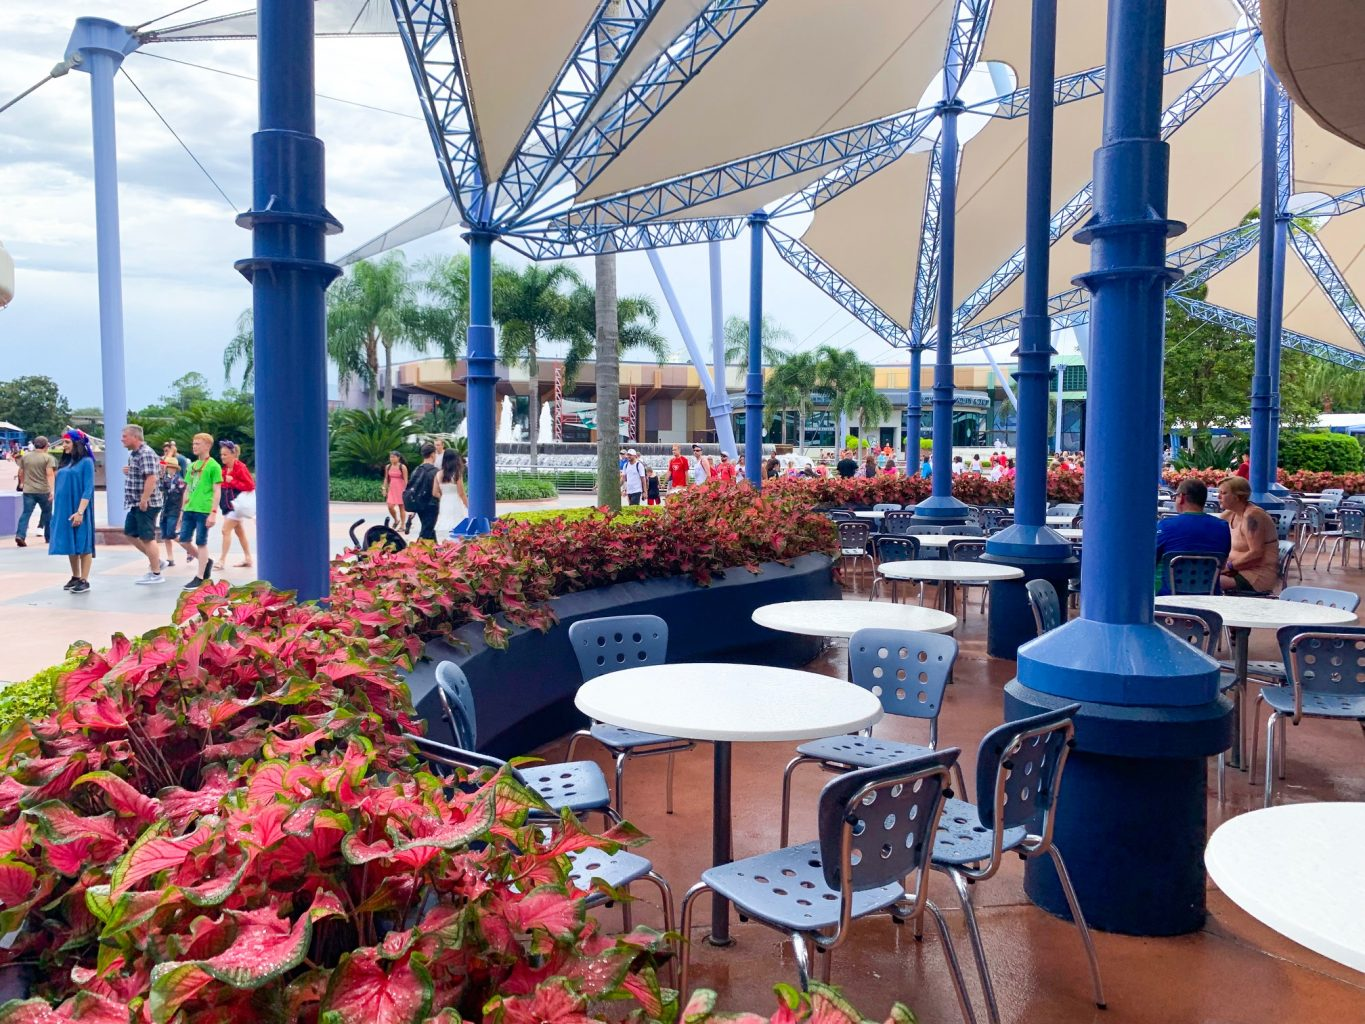 Outside of Electric Umbrella in Epcot